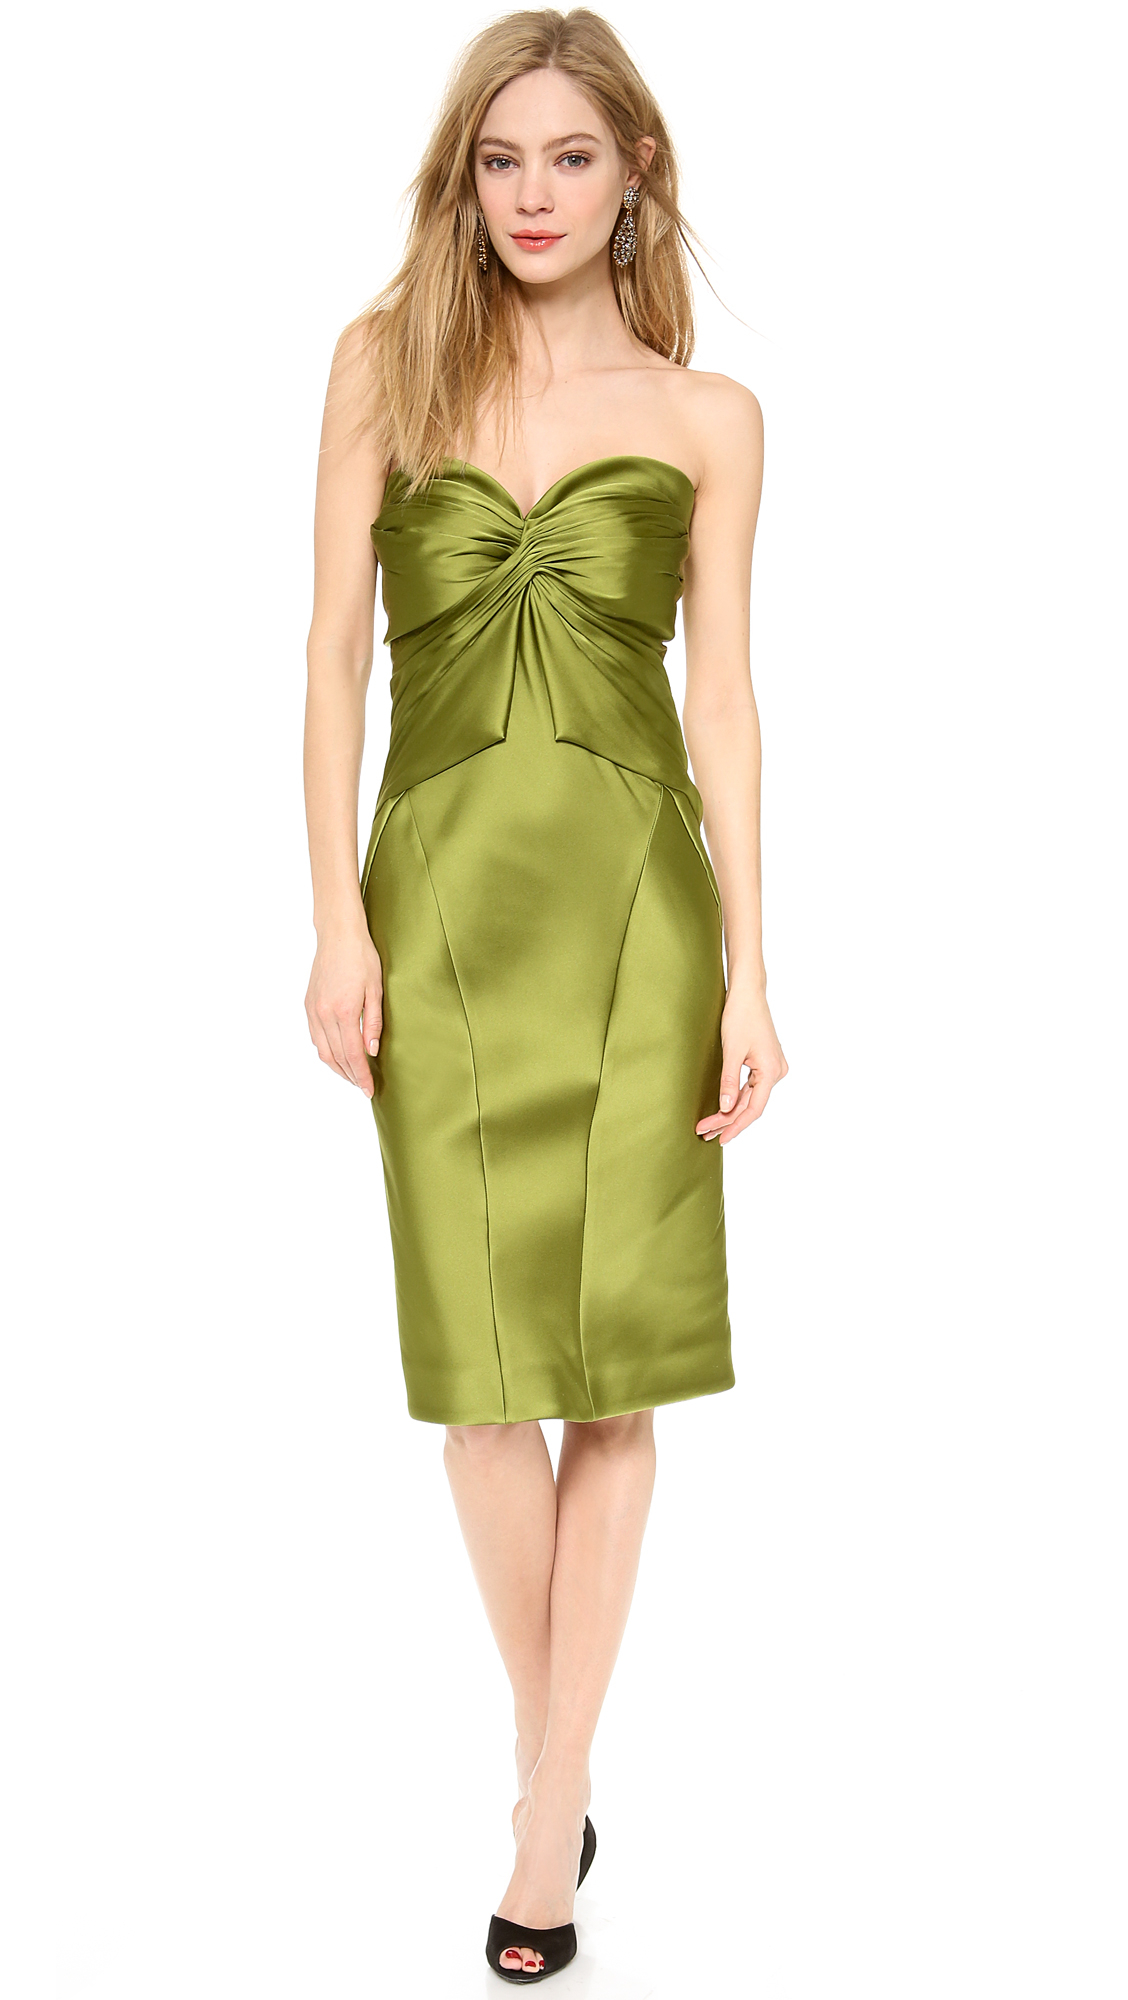 Zac Posen Cocktail Dresses 100